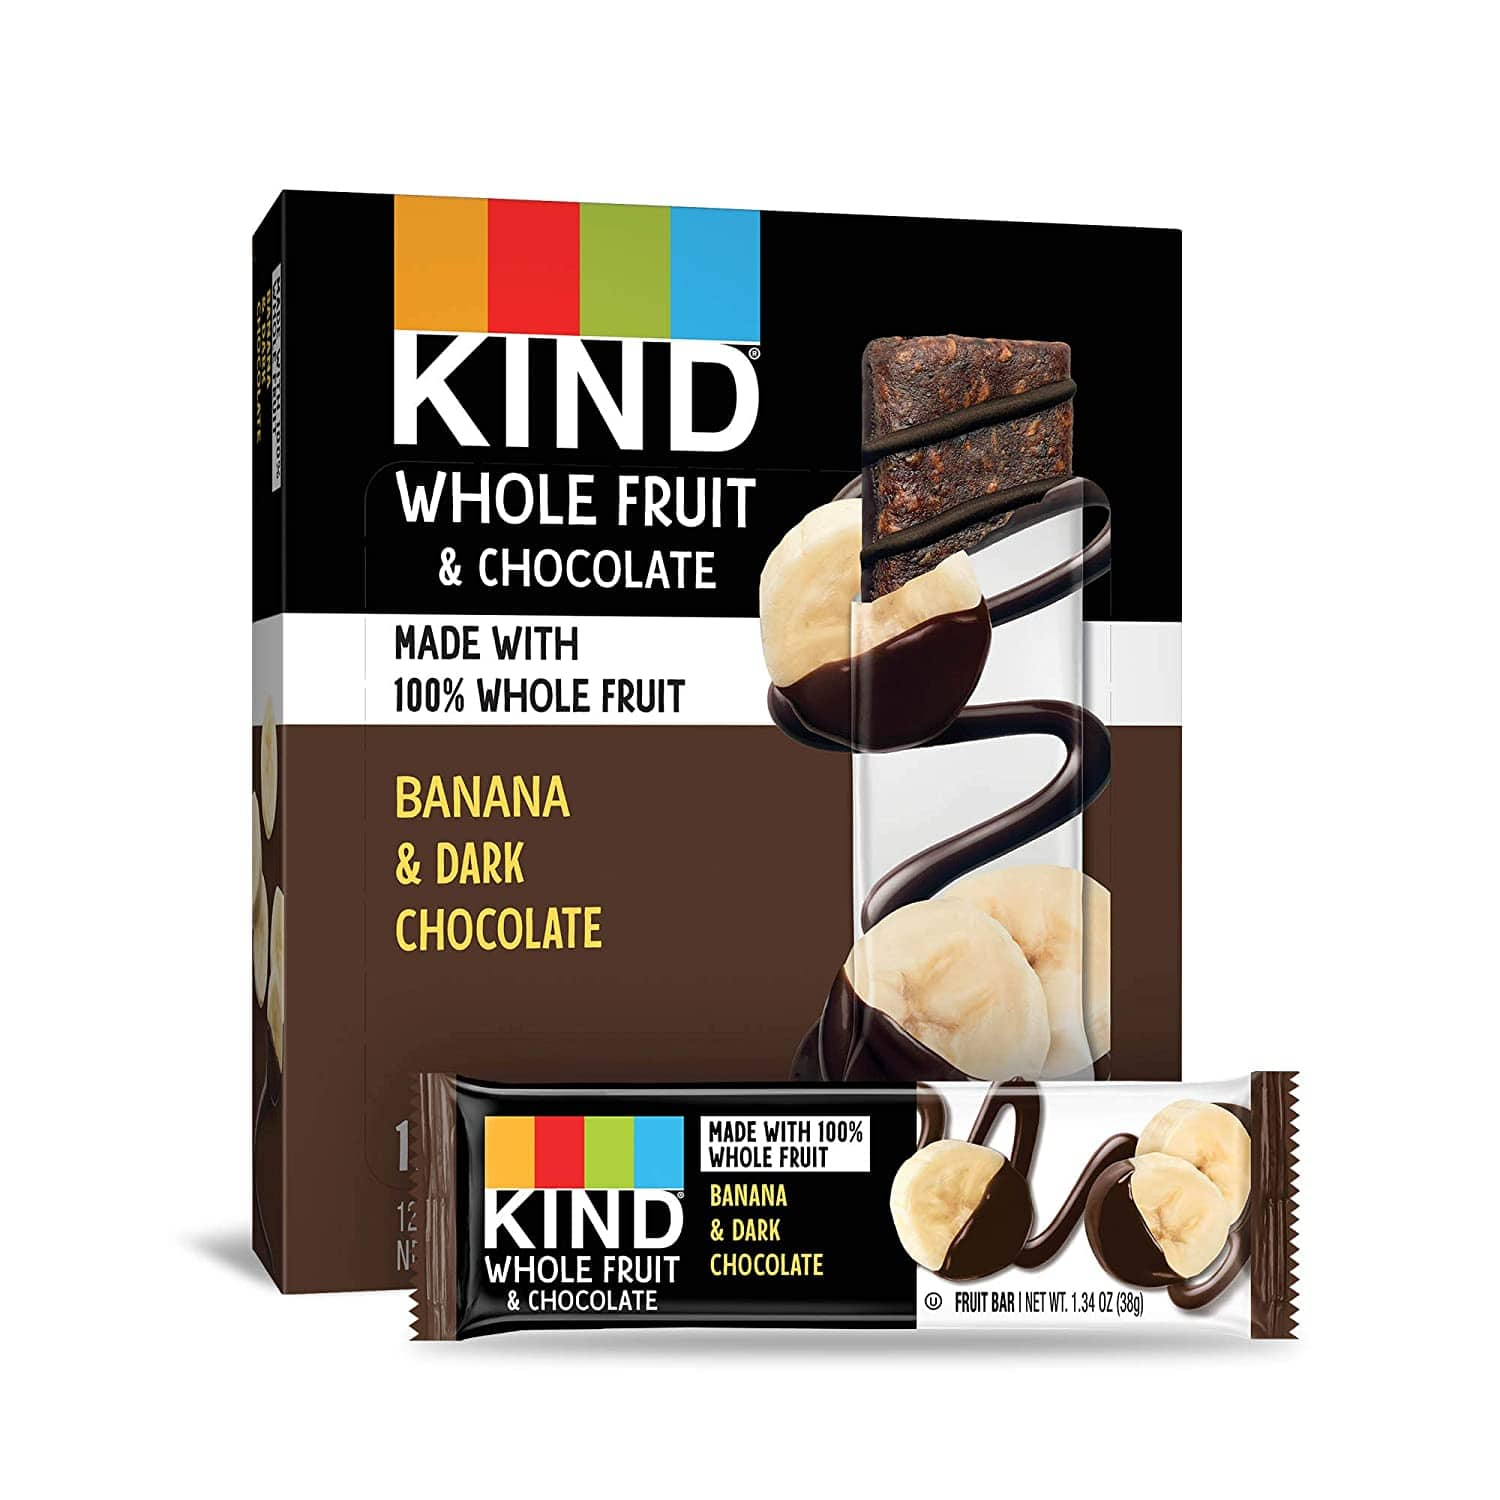 KIND Whole Fruit Bars, Chocolate Banana, No Sugar Added, Gluten Free, 1.34oz, 12 Count (formally Pressed by KIND) $10.8